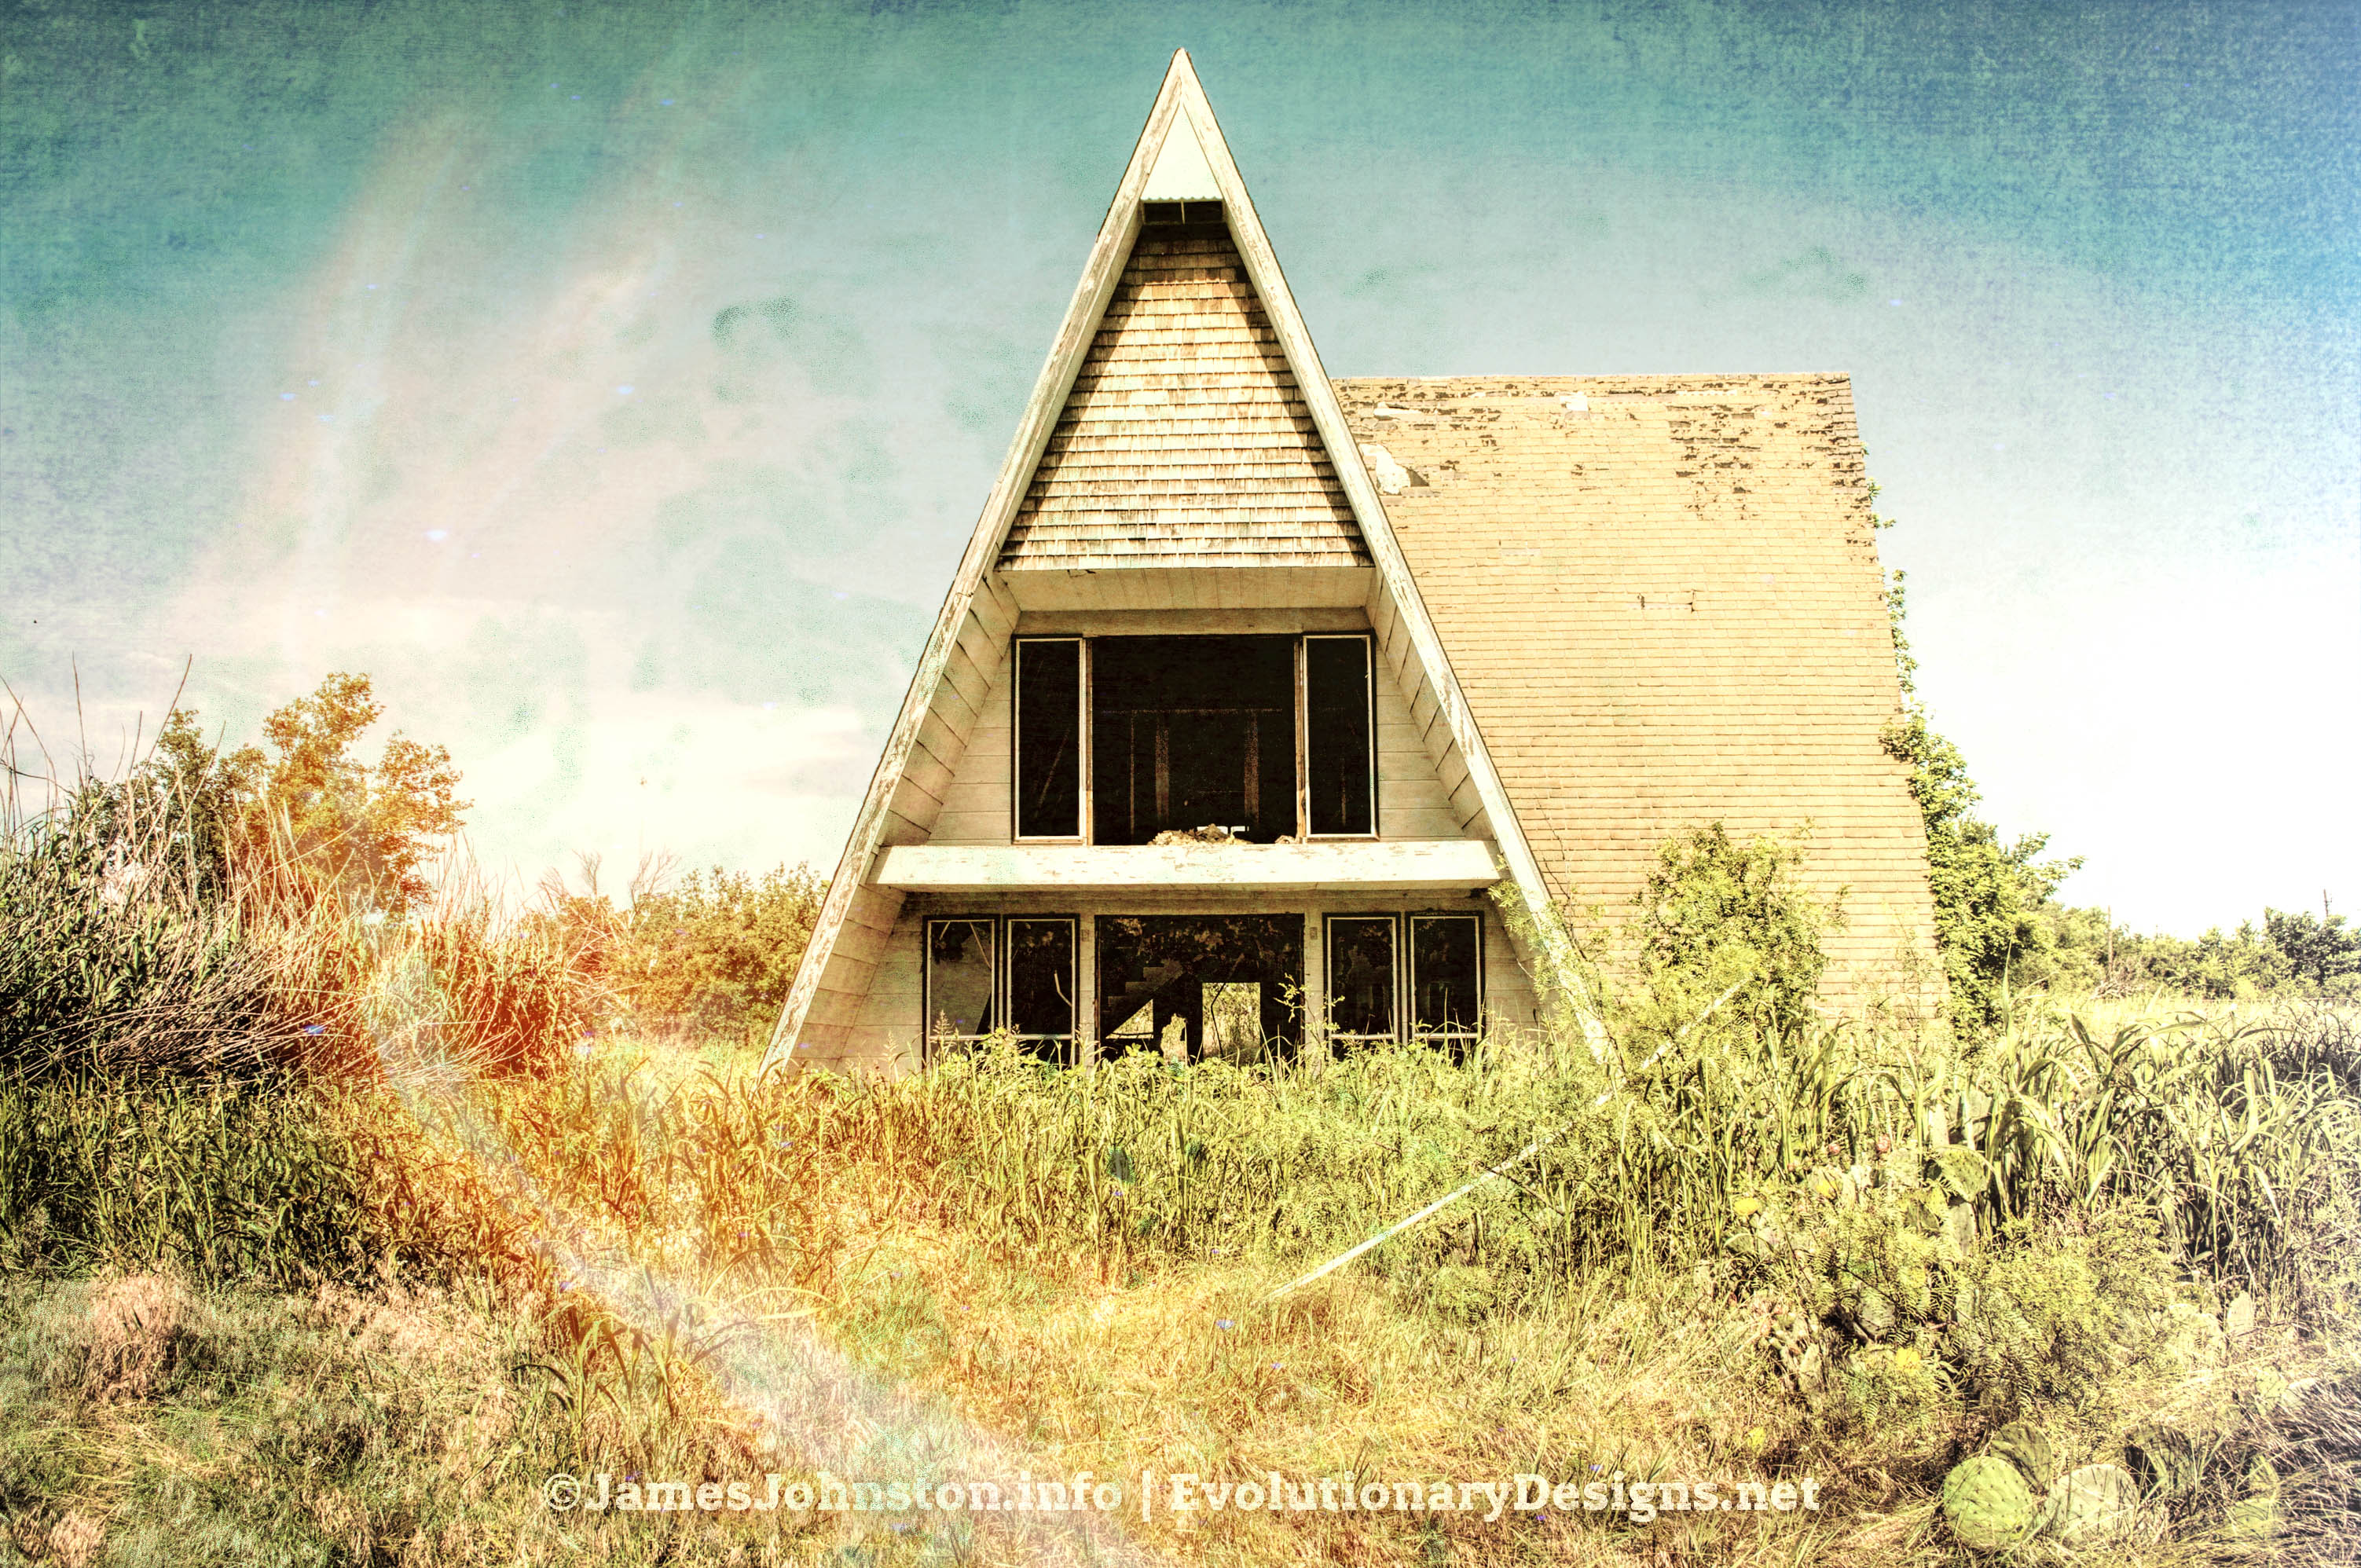 Abandoned A-Frame House in Jack County, Texas